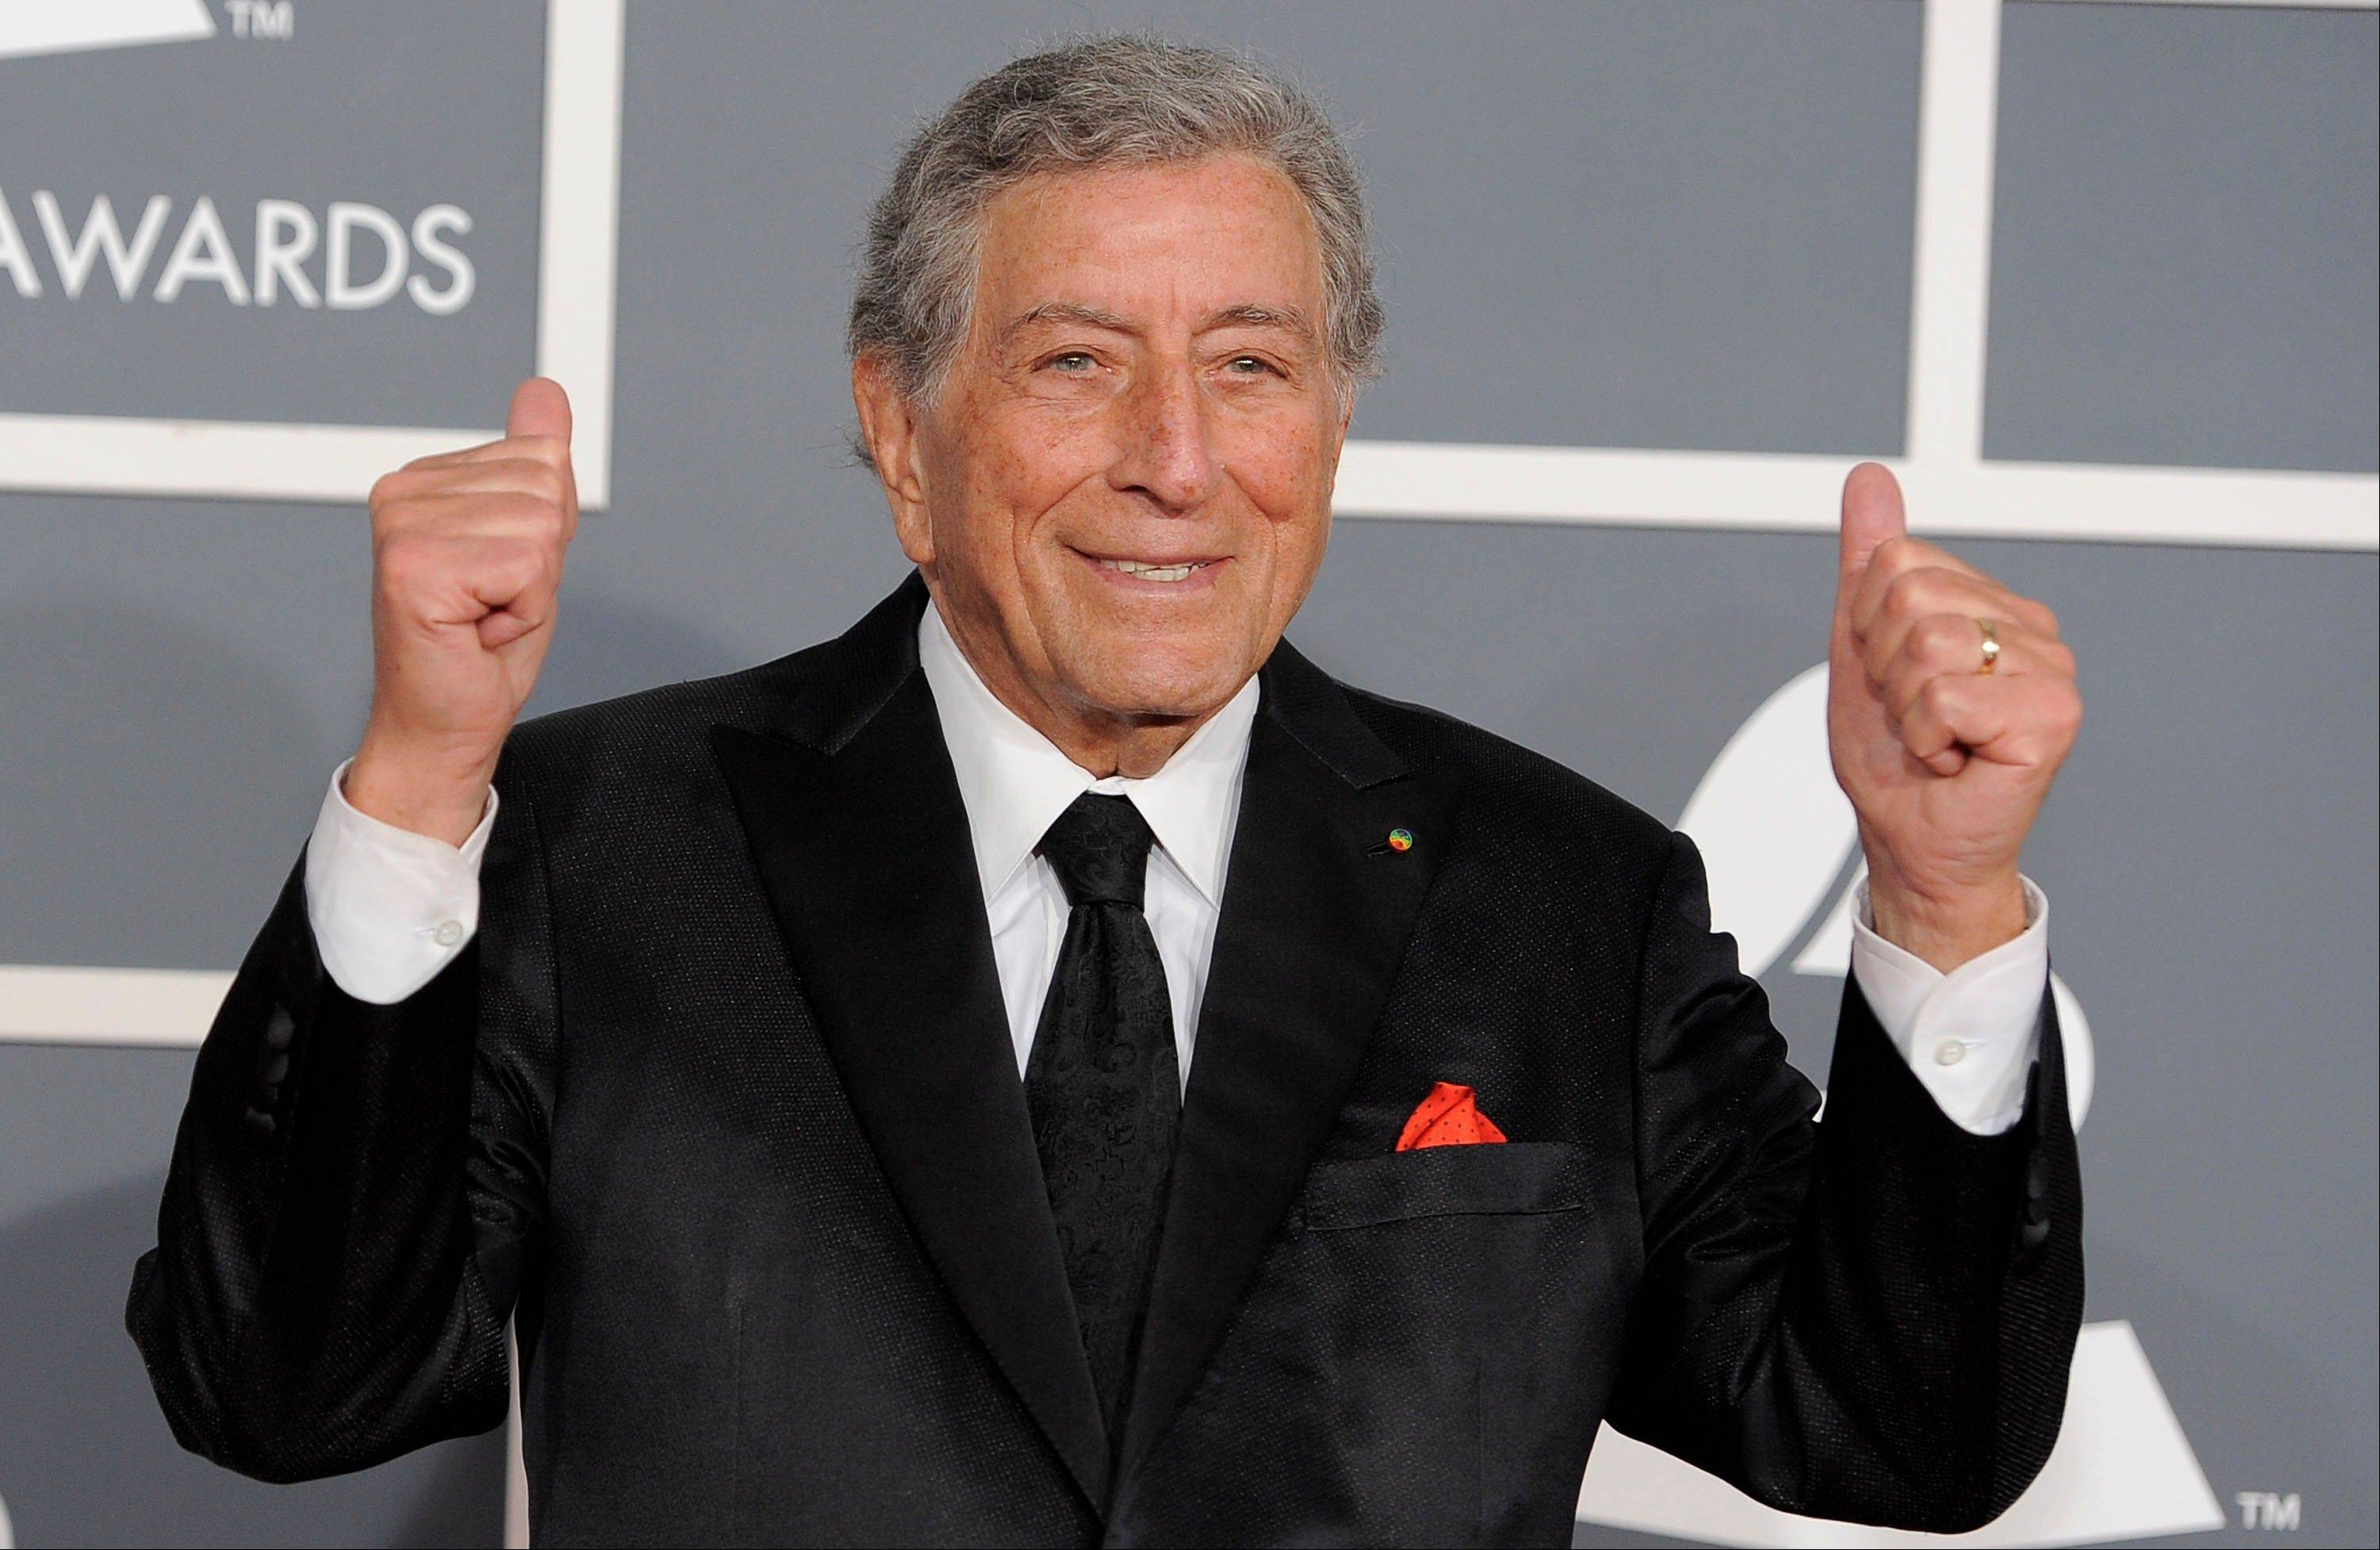 Tony Bennett arrives Sunday at the 54th annual Grammy Awards in Los Angeles.